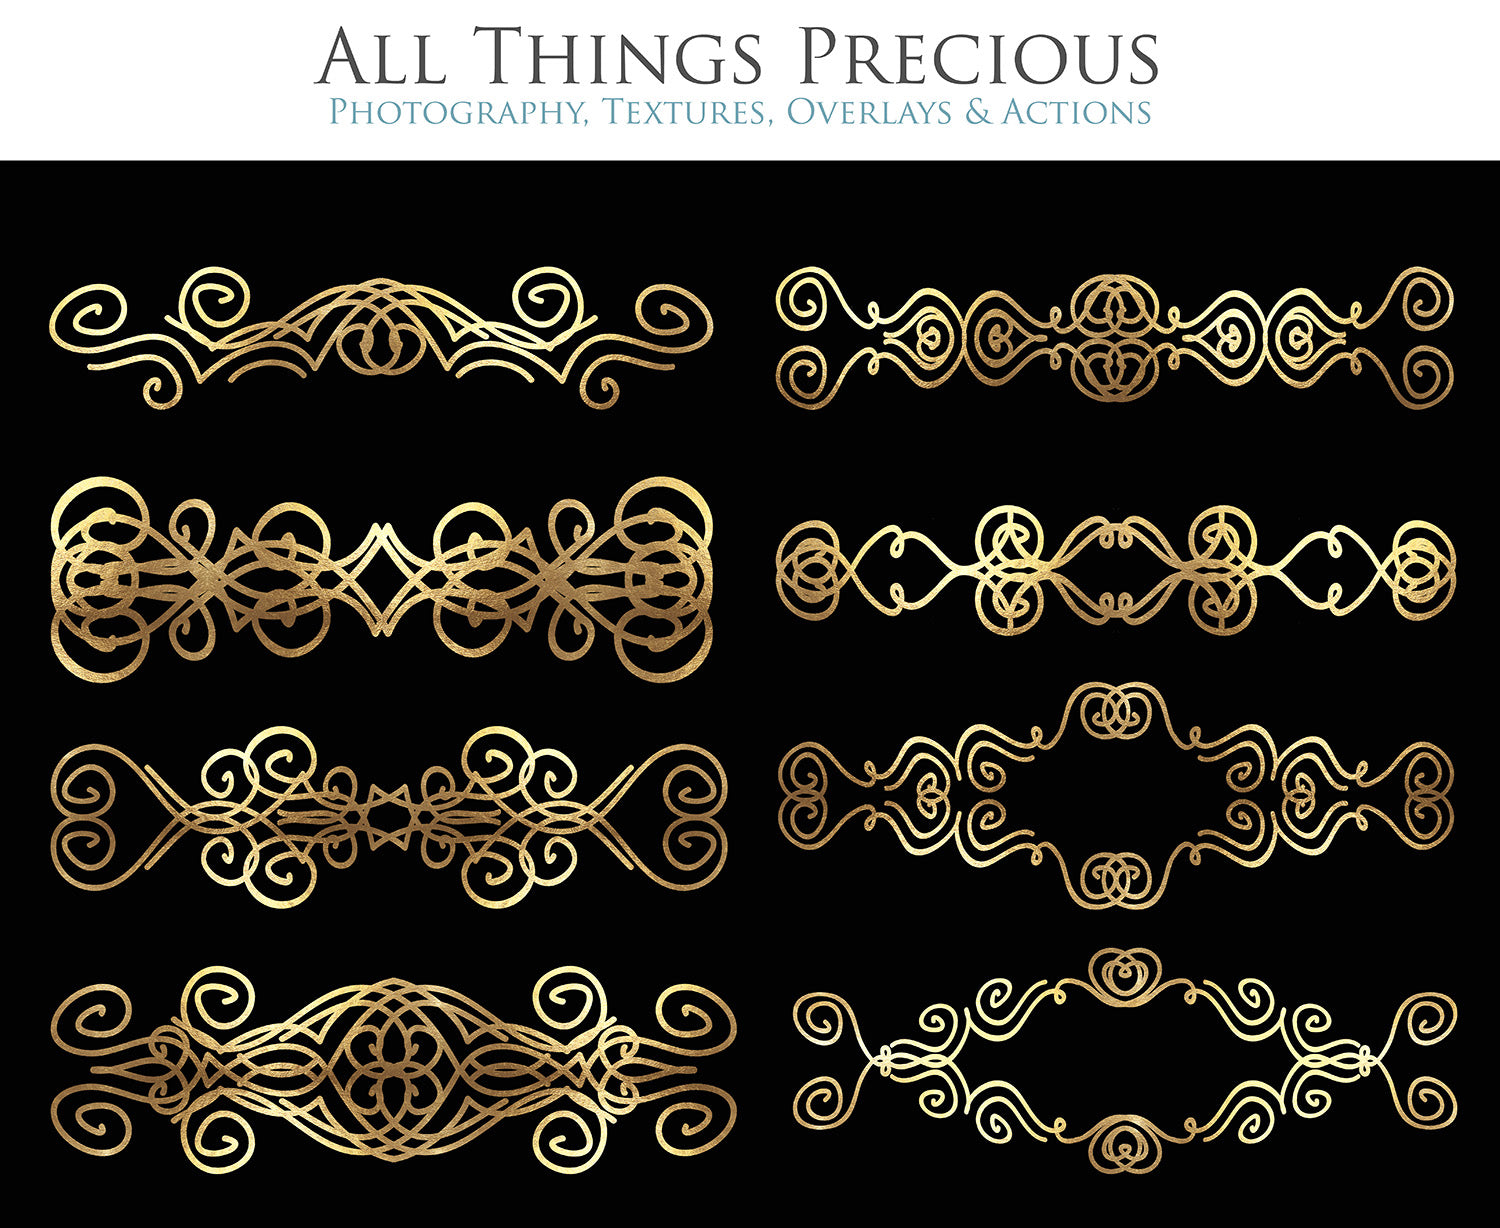 SWIRLY GOLD BORDERS set 2 - Clipart